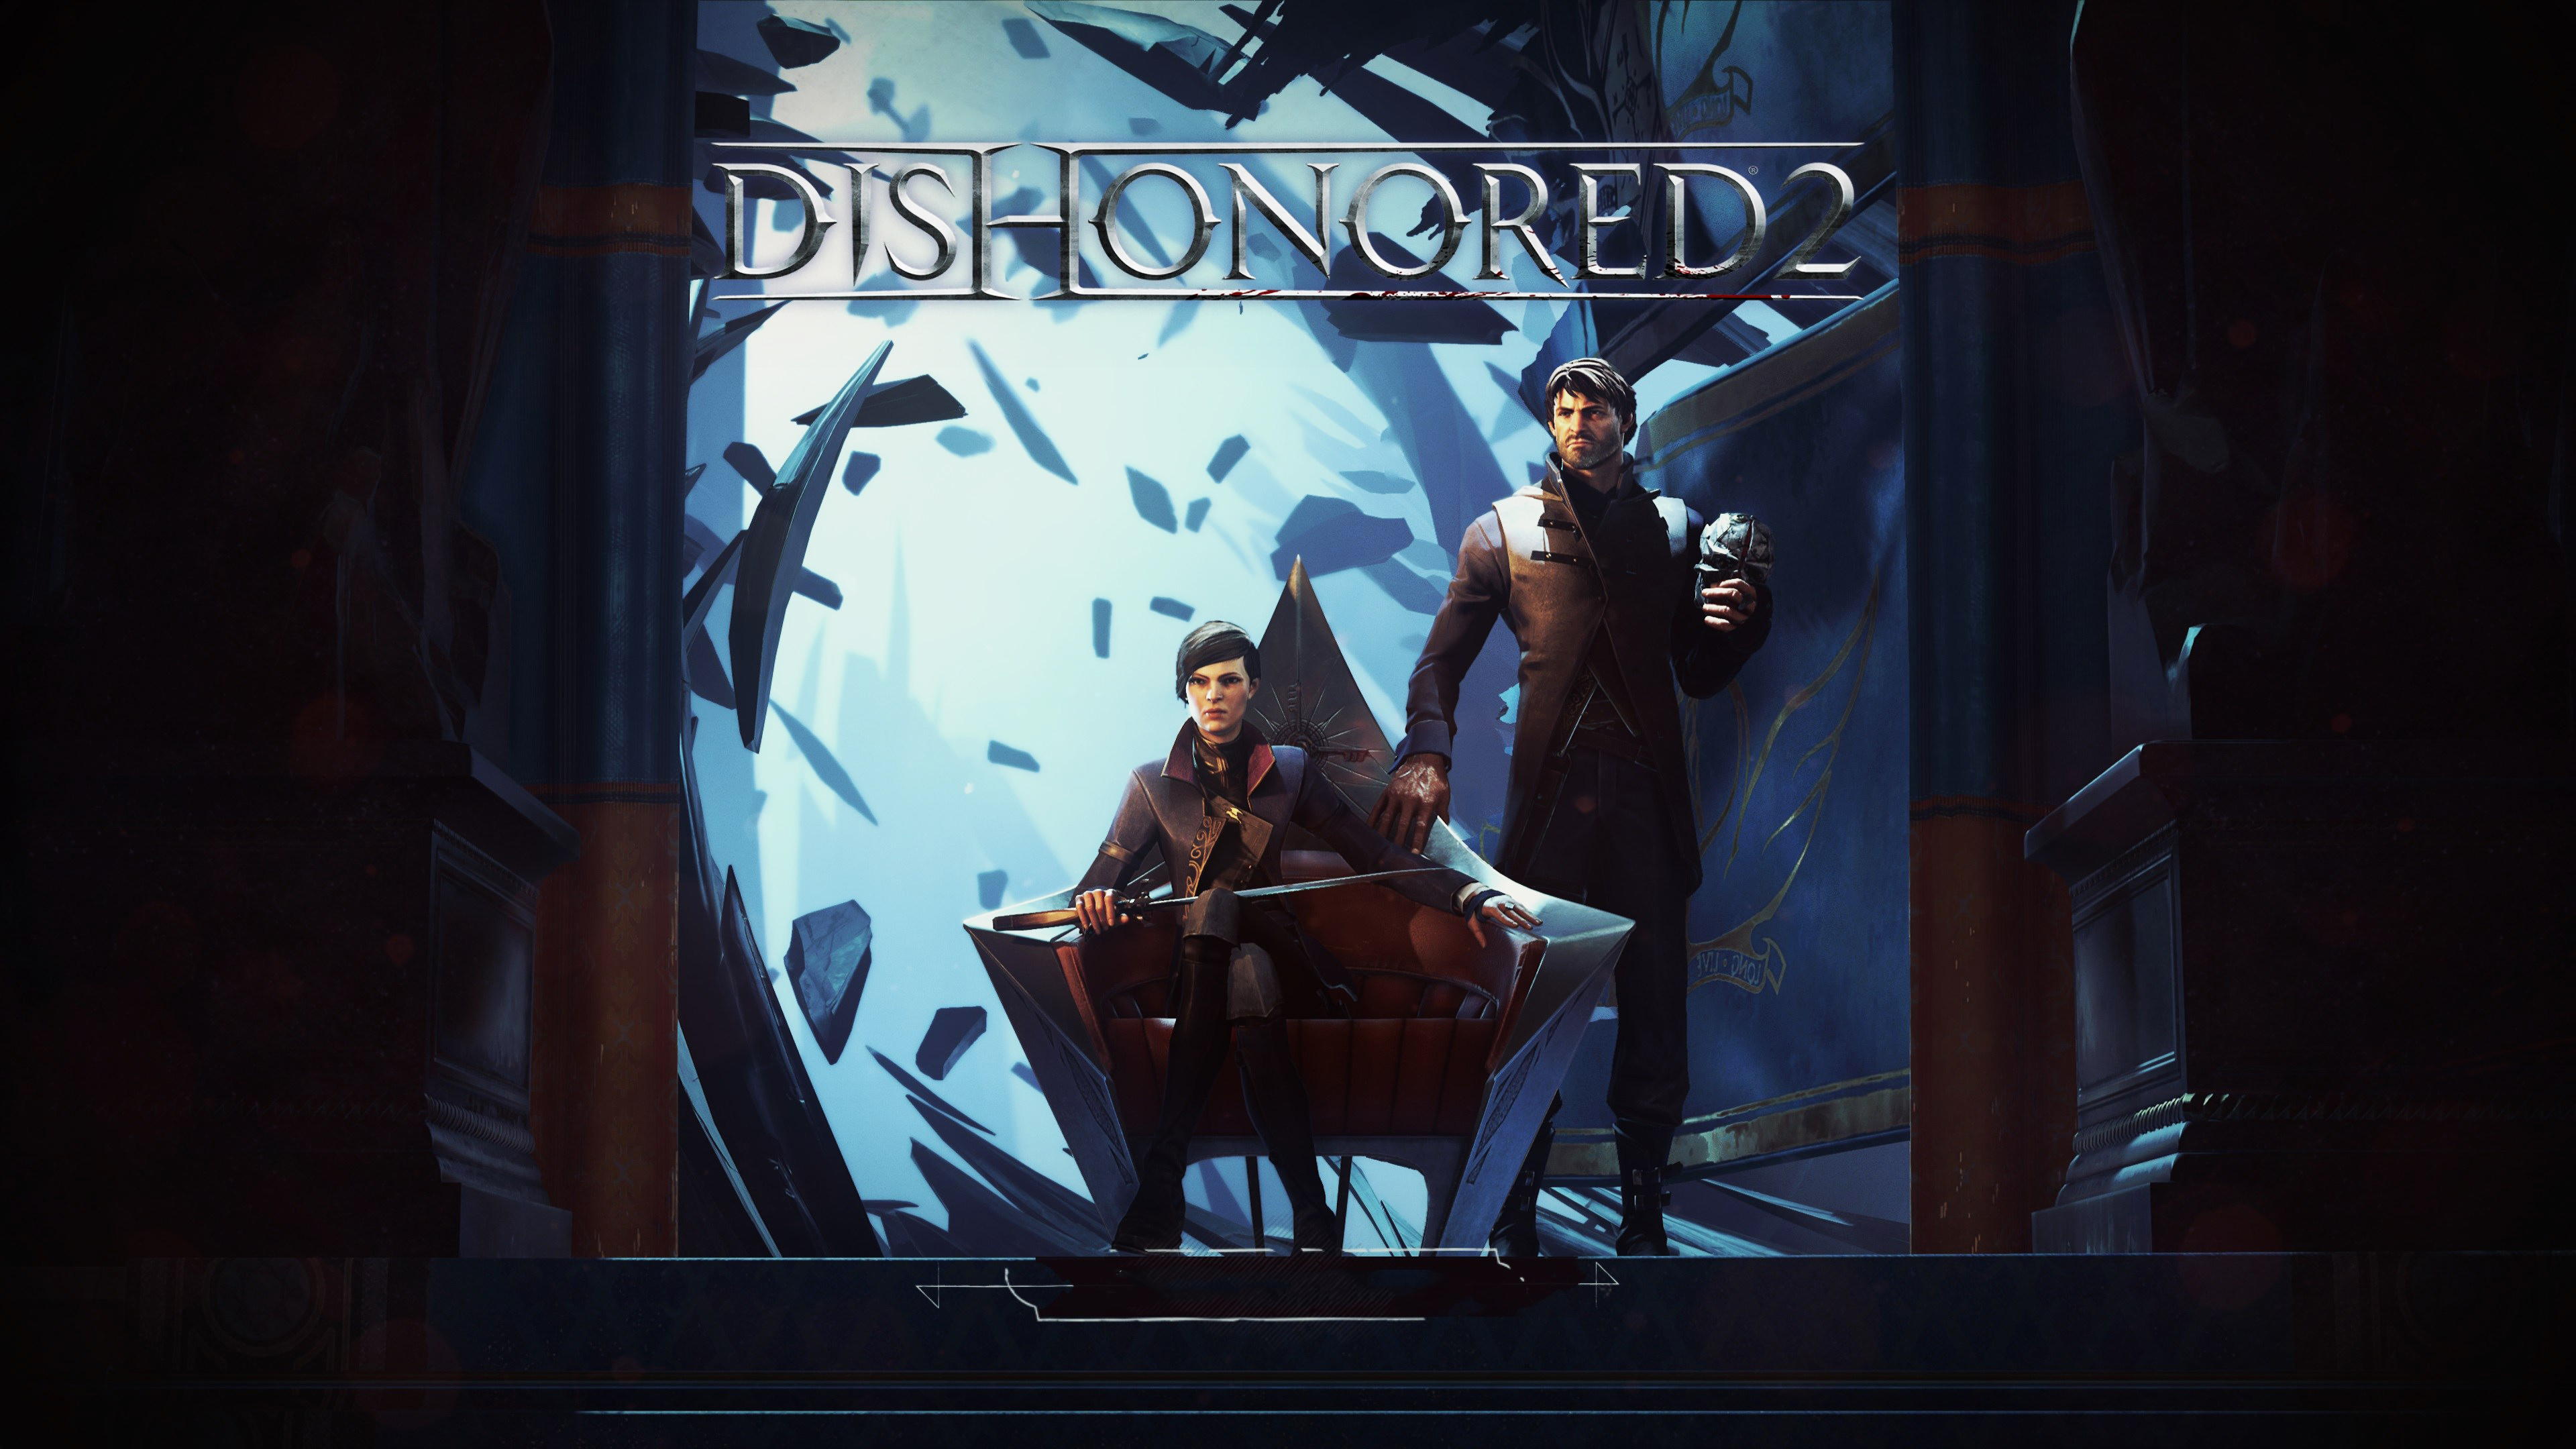 dishonored 2018 4k 1540982717 - Dishonored 2018 4k - xbox games wallpapers, ps4 games wallpapers, hd-wallpapers, games wallpapers, dishonored 2 wallpapers, 4k-wallpapers